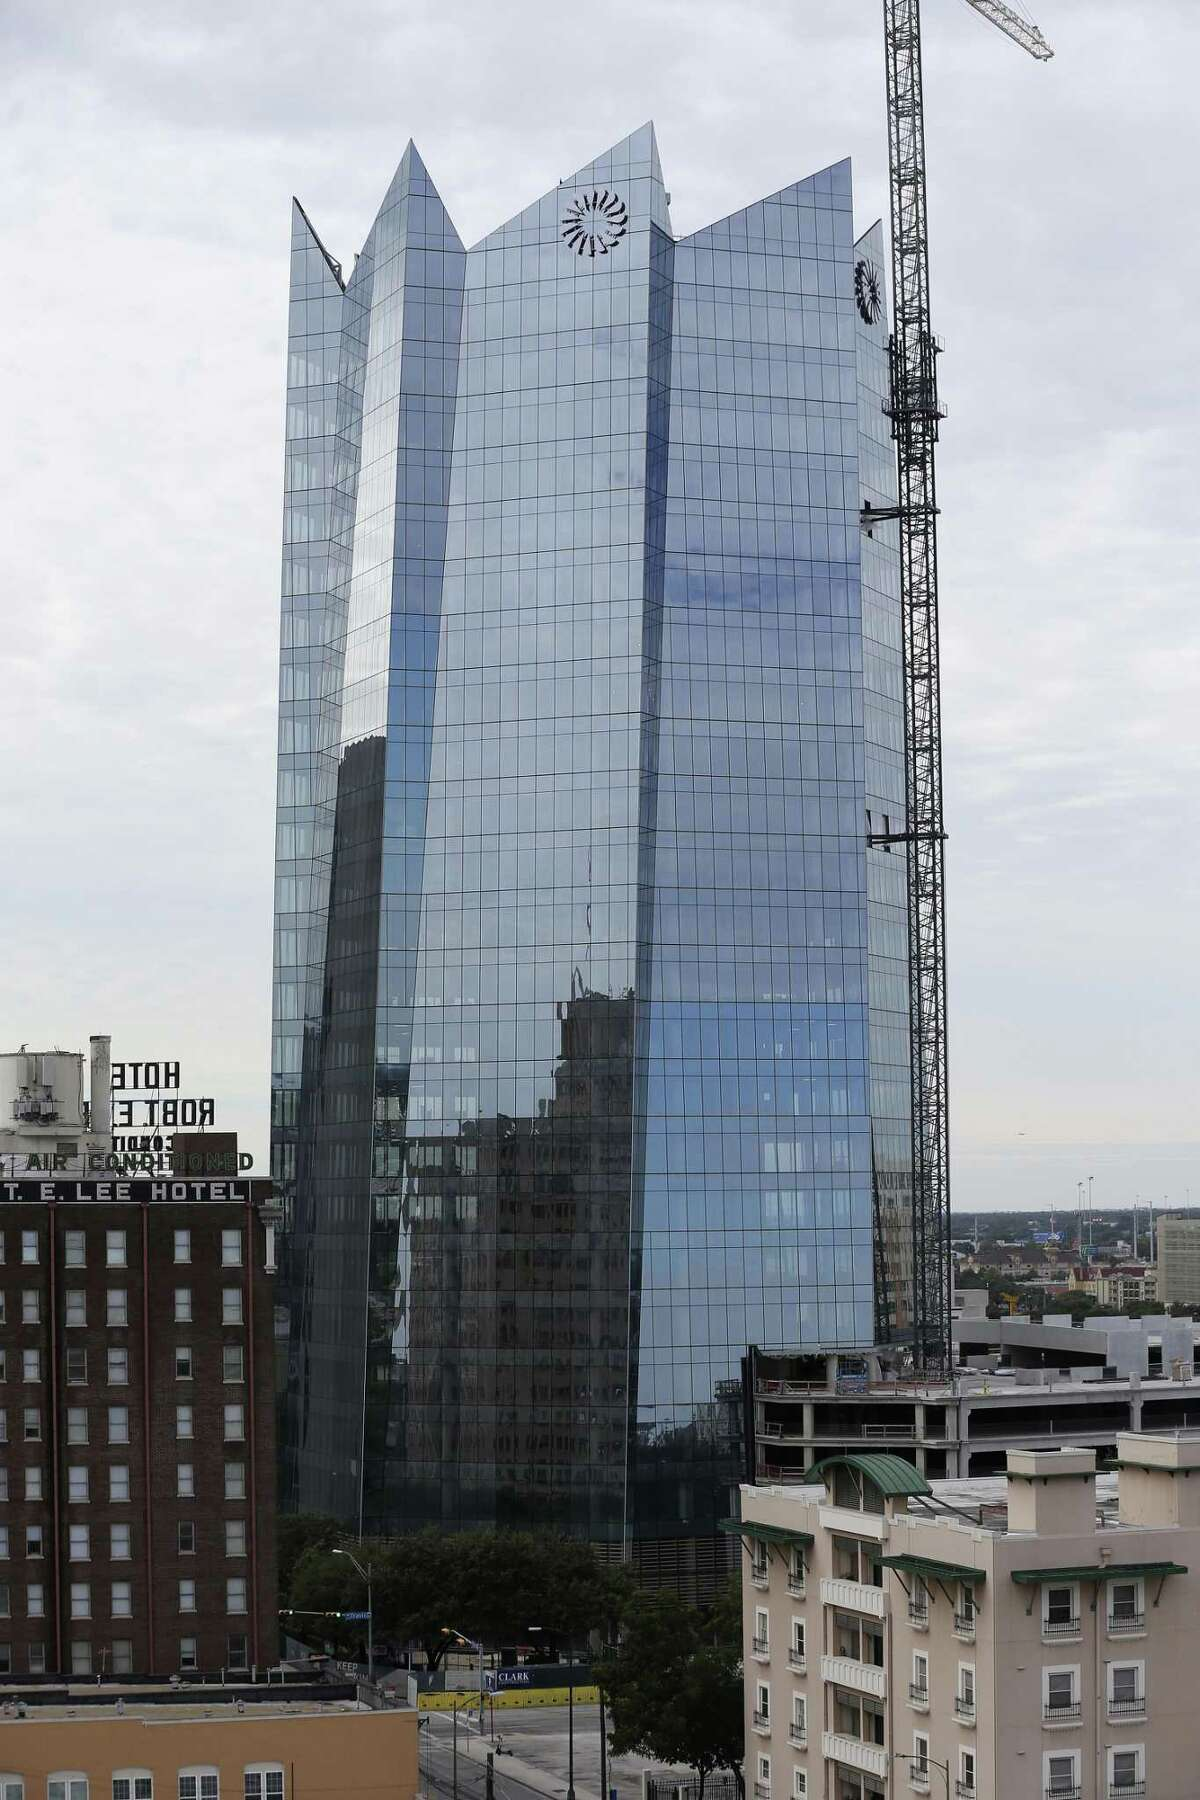 Frost Bank Tower The city of San Antonio paved the way for the construction of Frost Bank Tower in 2015, when it approved a public-private partnership with Weston Urban and Frost Bank. Crews started construction in 2017. Estimated completion: January 2019